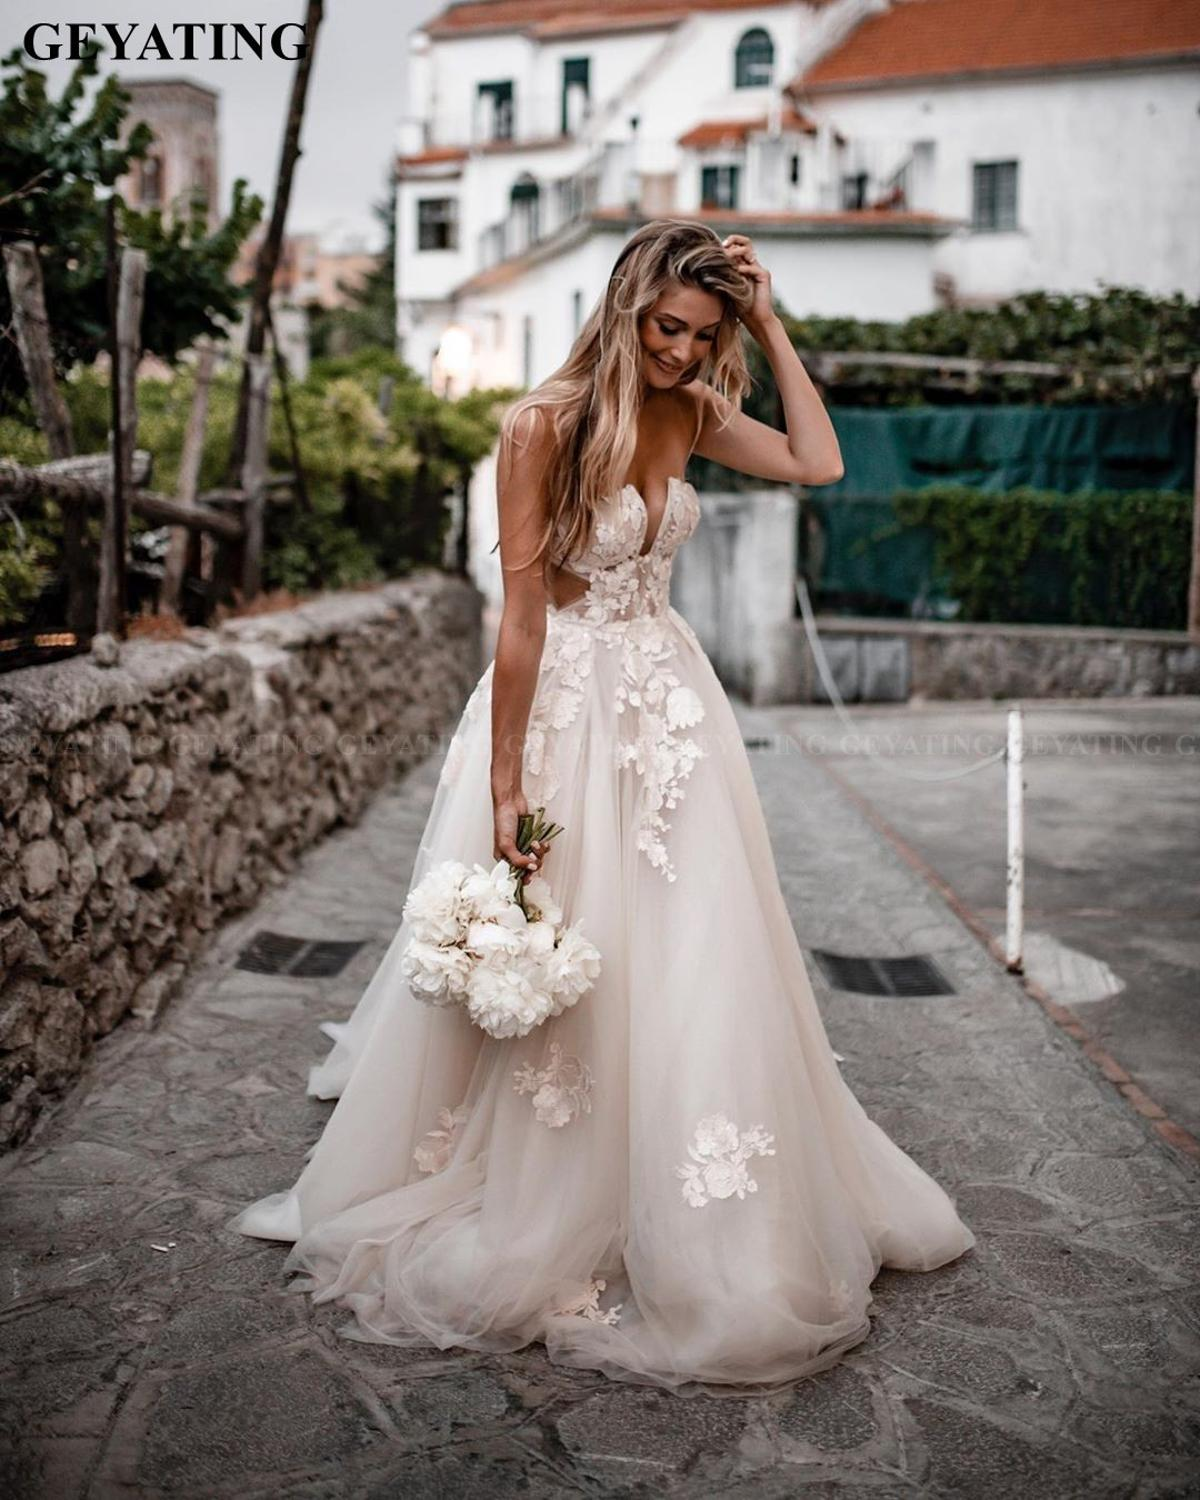 Rustic Lace Appliques Country Wedding Dress Bohemian 2020 Designer A-line Boho Retro Off Shoulder Bridal Gowns With Court Train